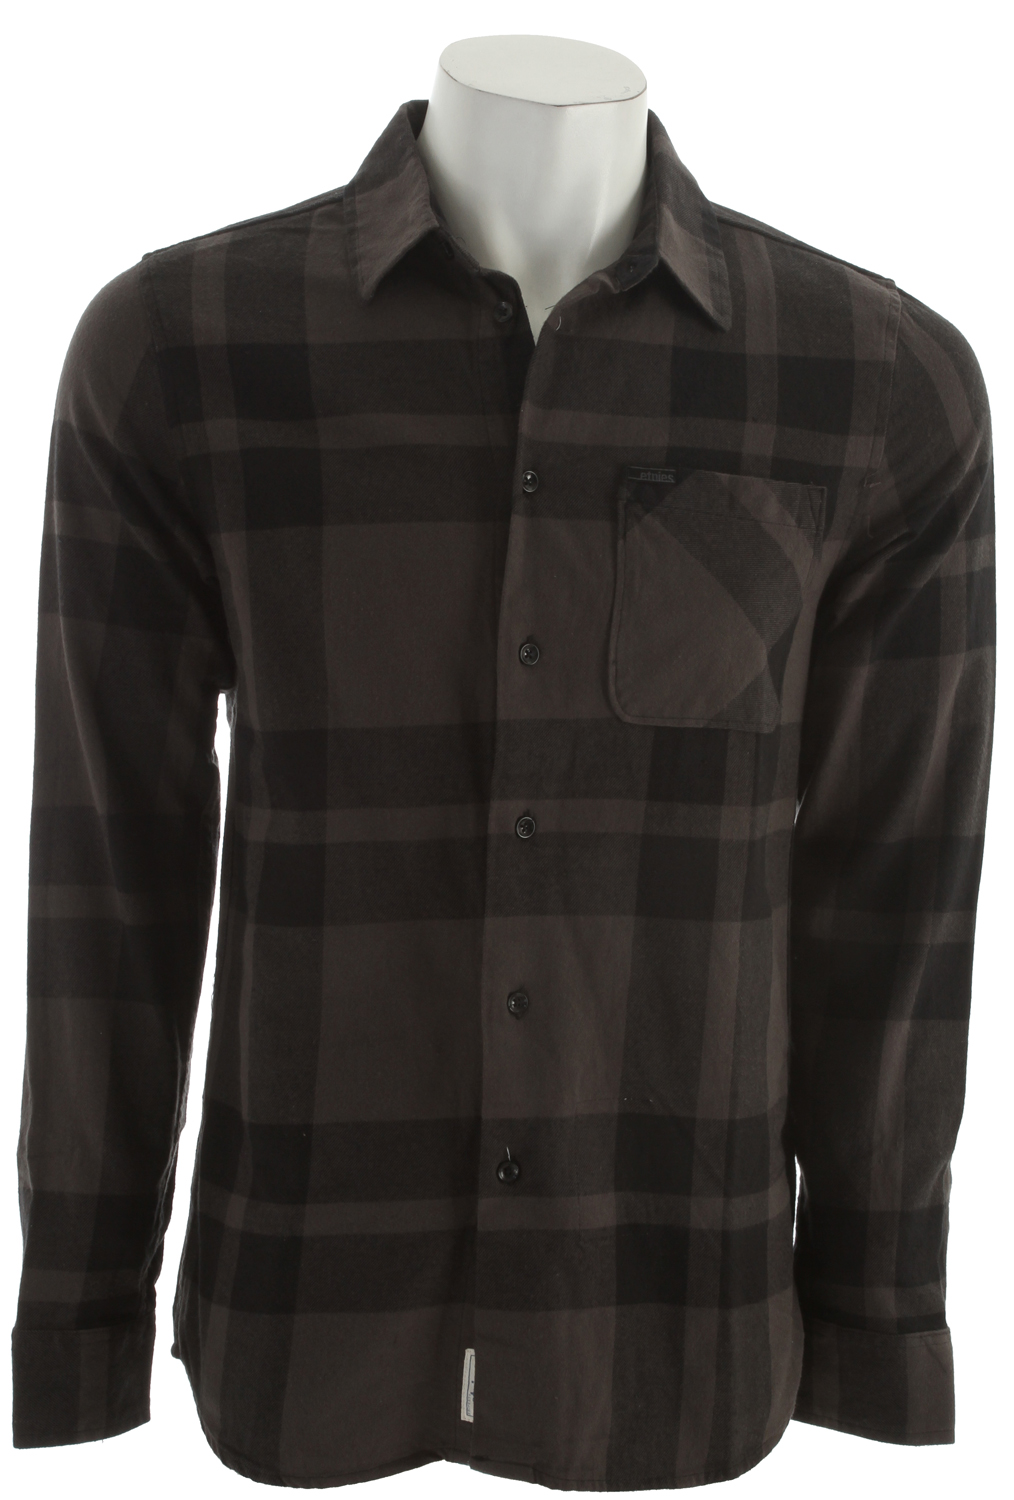 Skateboard Key Features of the Etnies Chi Town Repel Shirt: 100% cotton yarn dye Classic buffalo plaid long sleeve flannel Repel water resistant finish Single chest pocket Custom trims and label package - $38.95